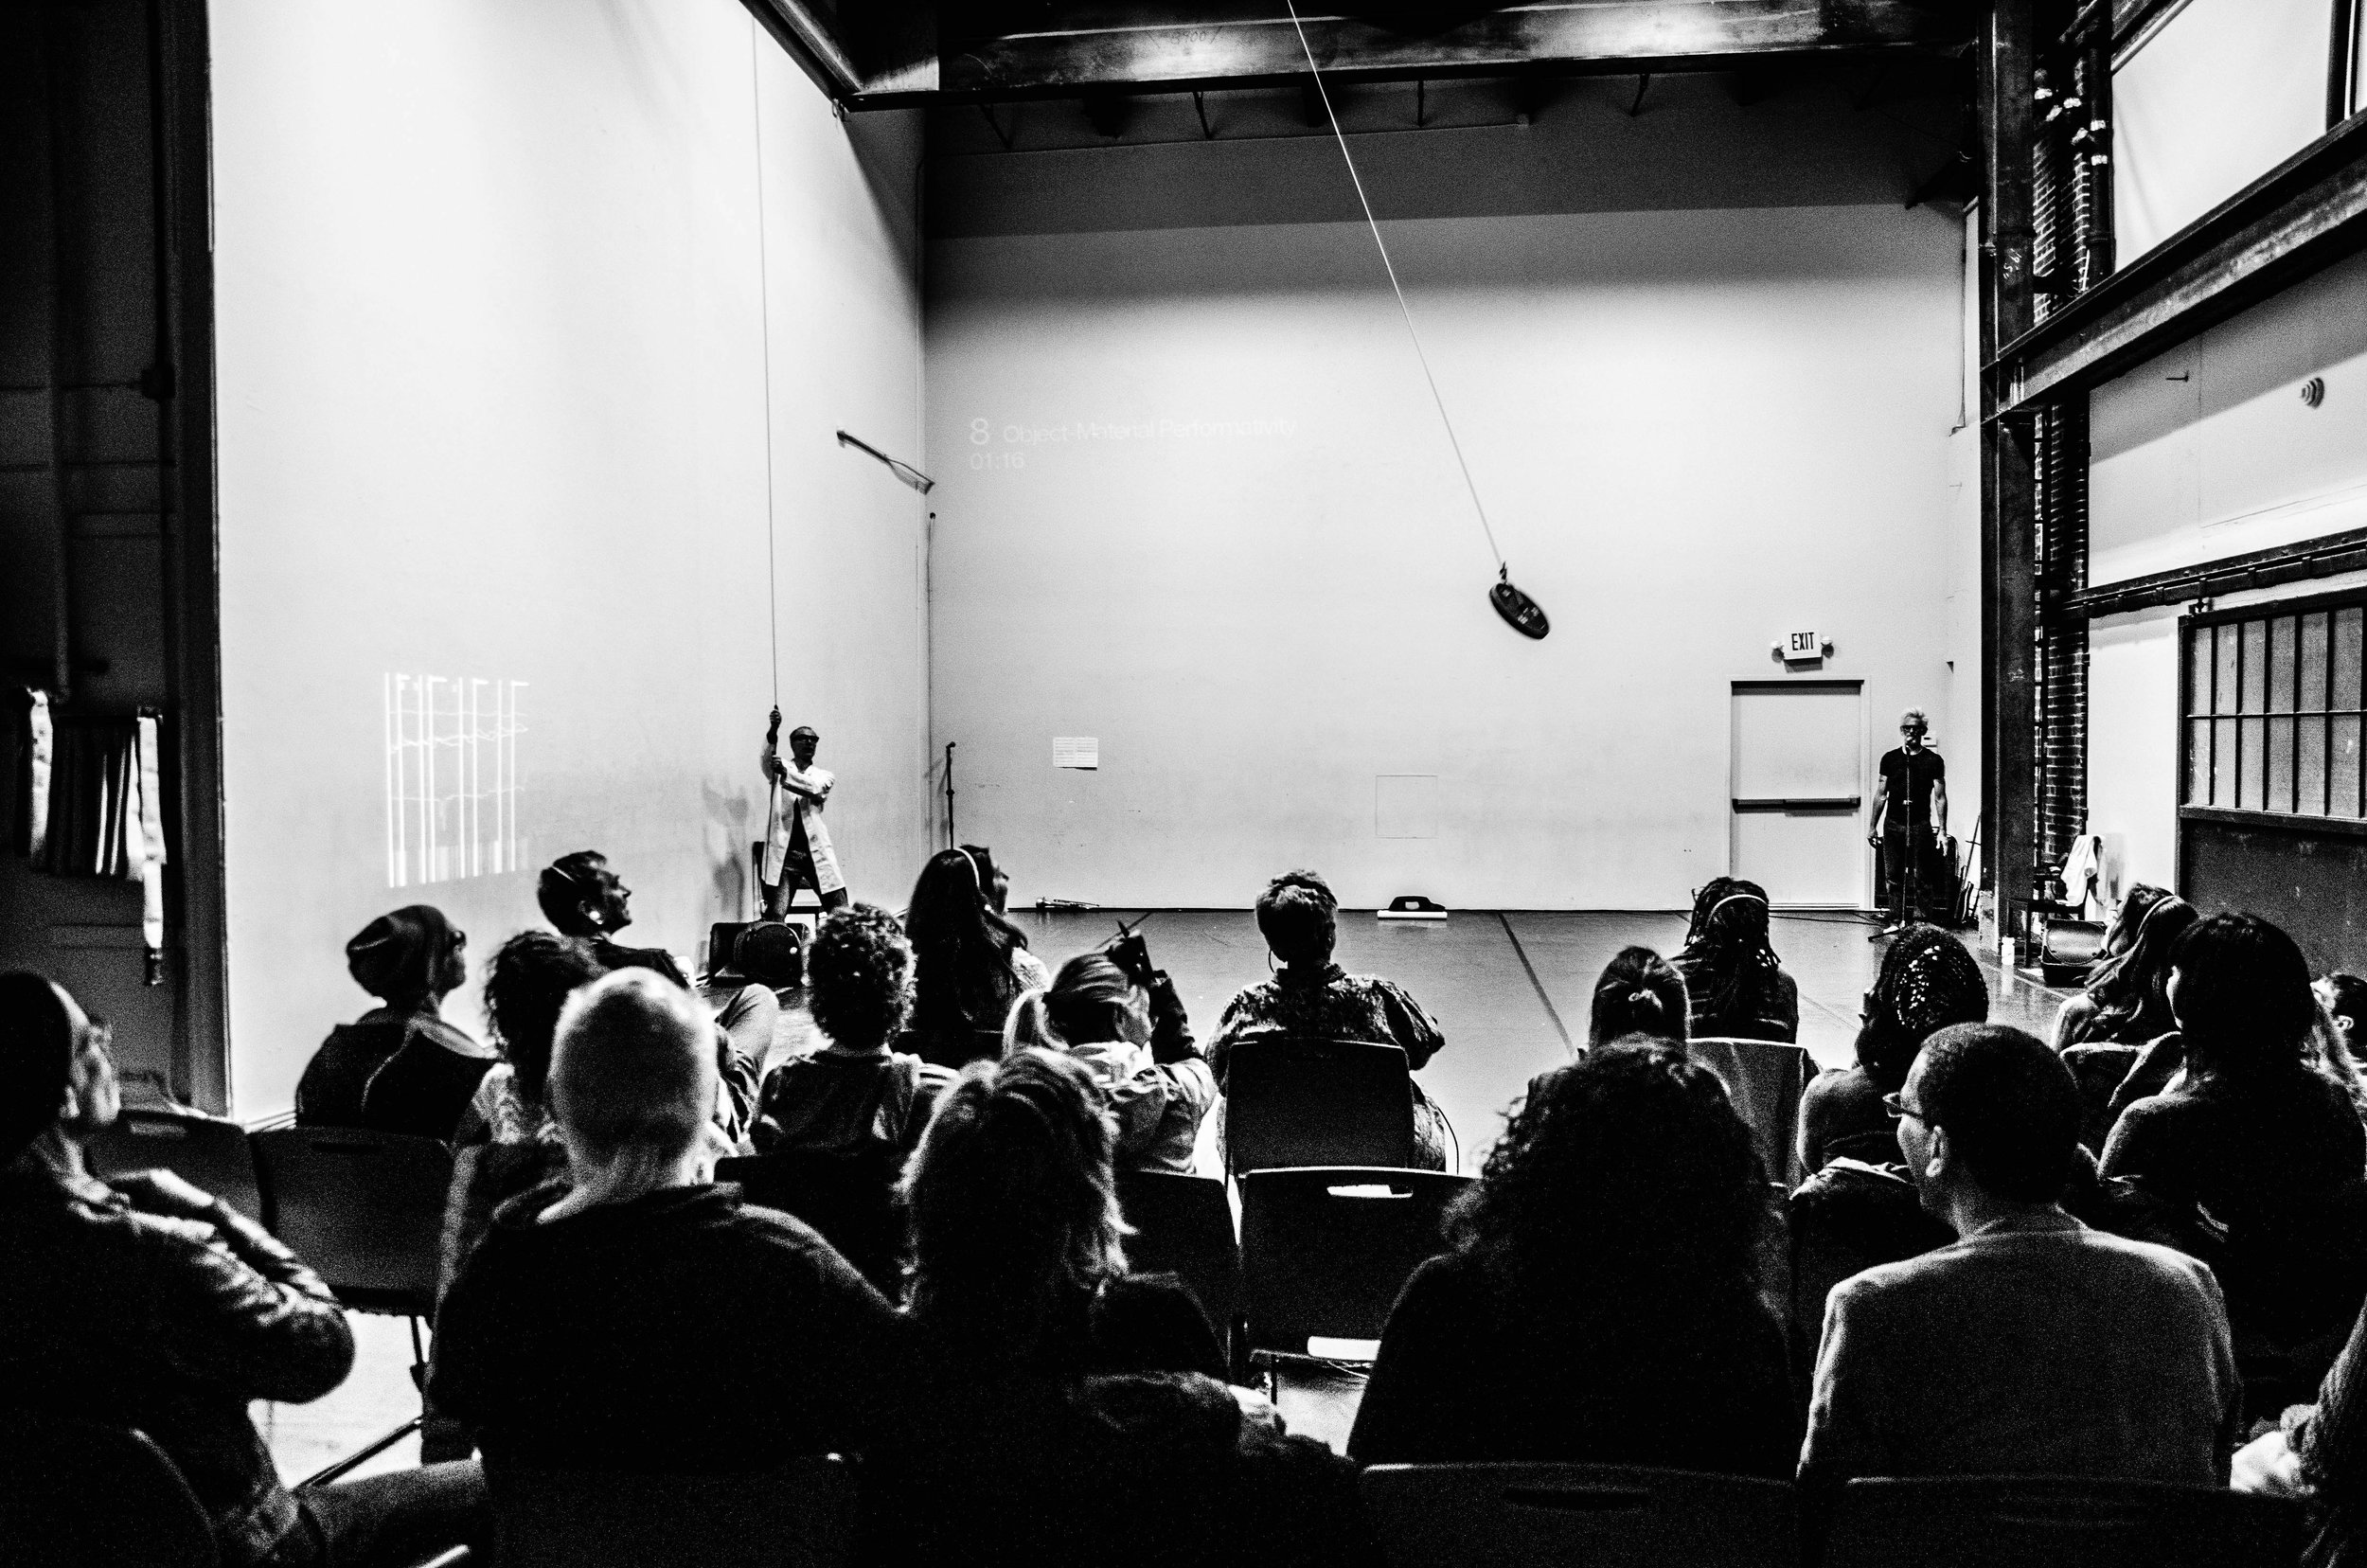 B/W image from audience POV. Curtis at mic. Müller holds rope controlling a large round circular object that swings above the stage. (photo: Robbie Sweeny)